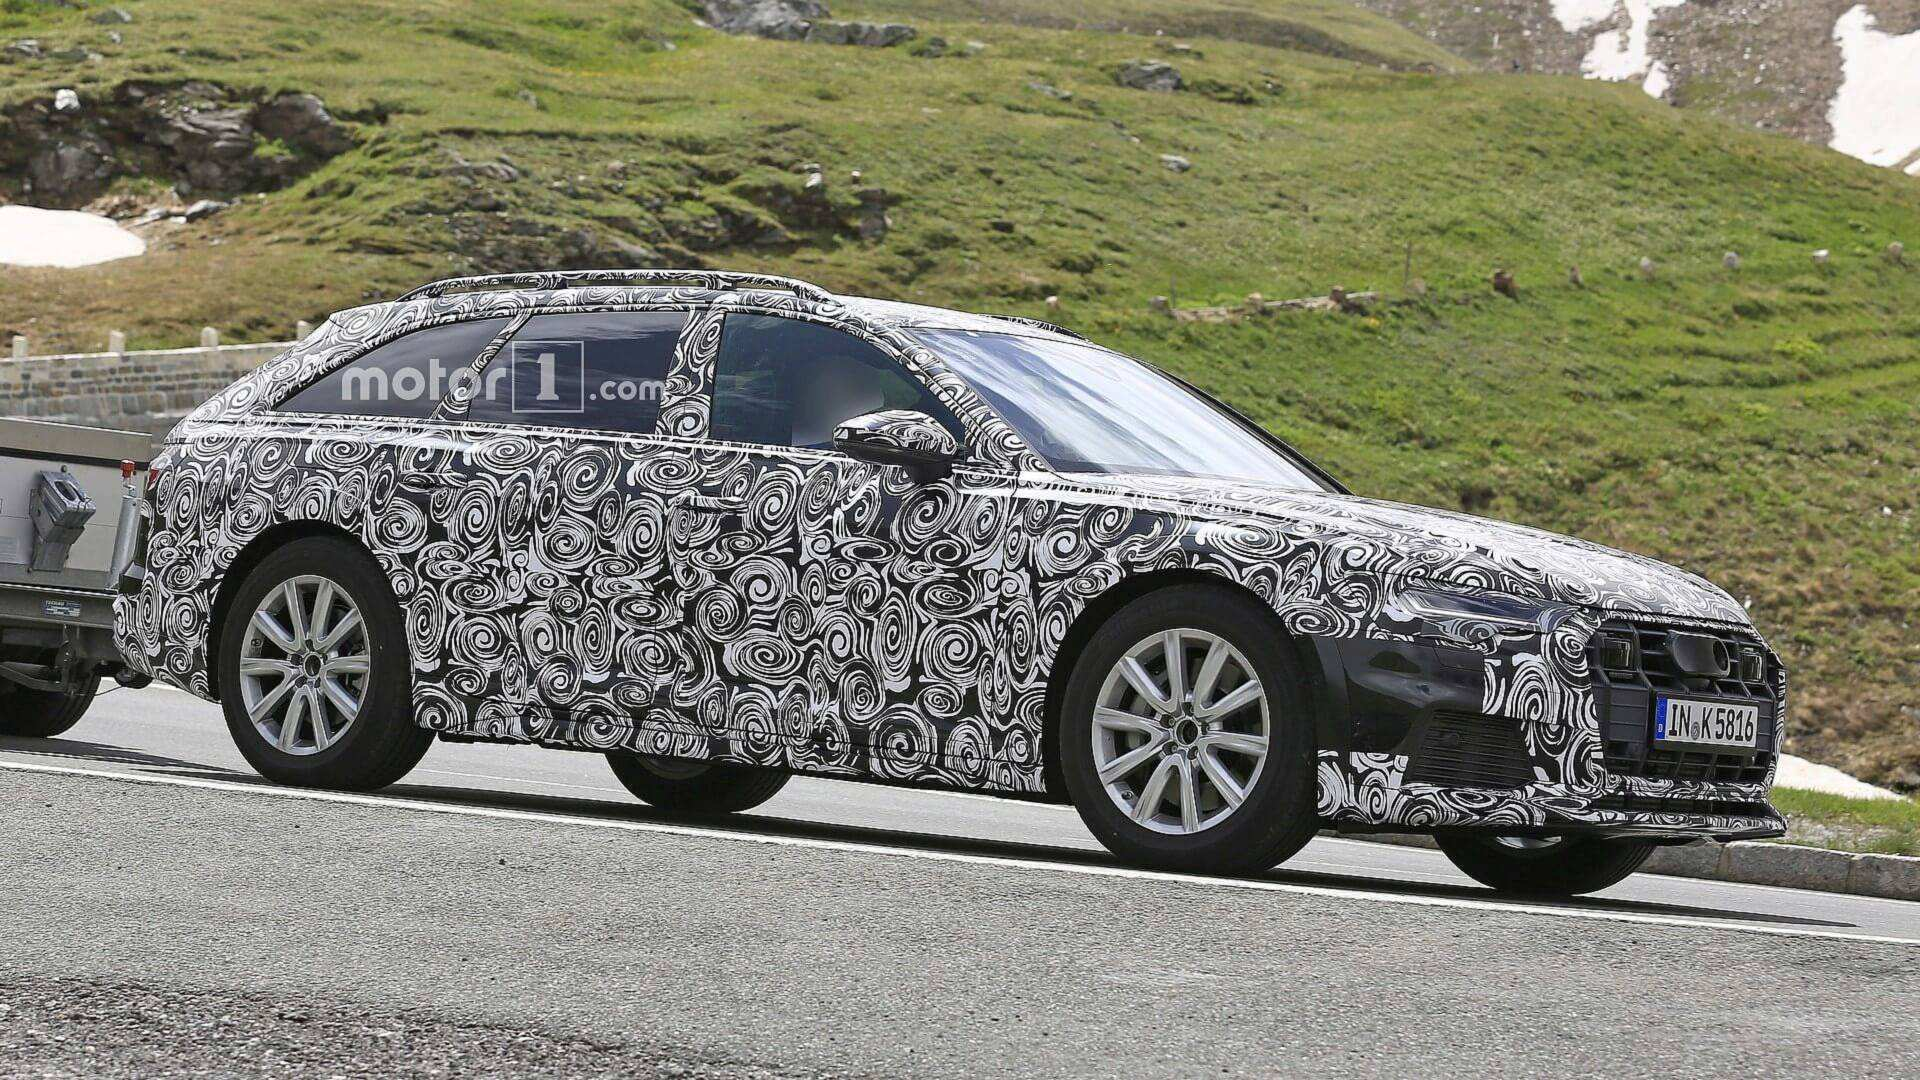 65 All New 2020 Audi A6 Allroad Usa Style